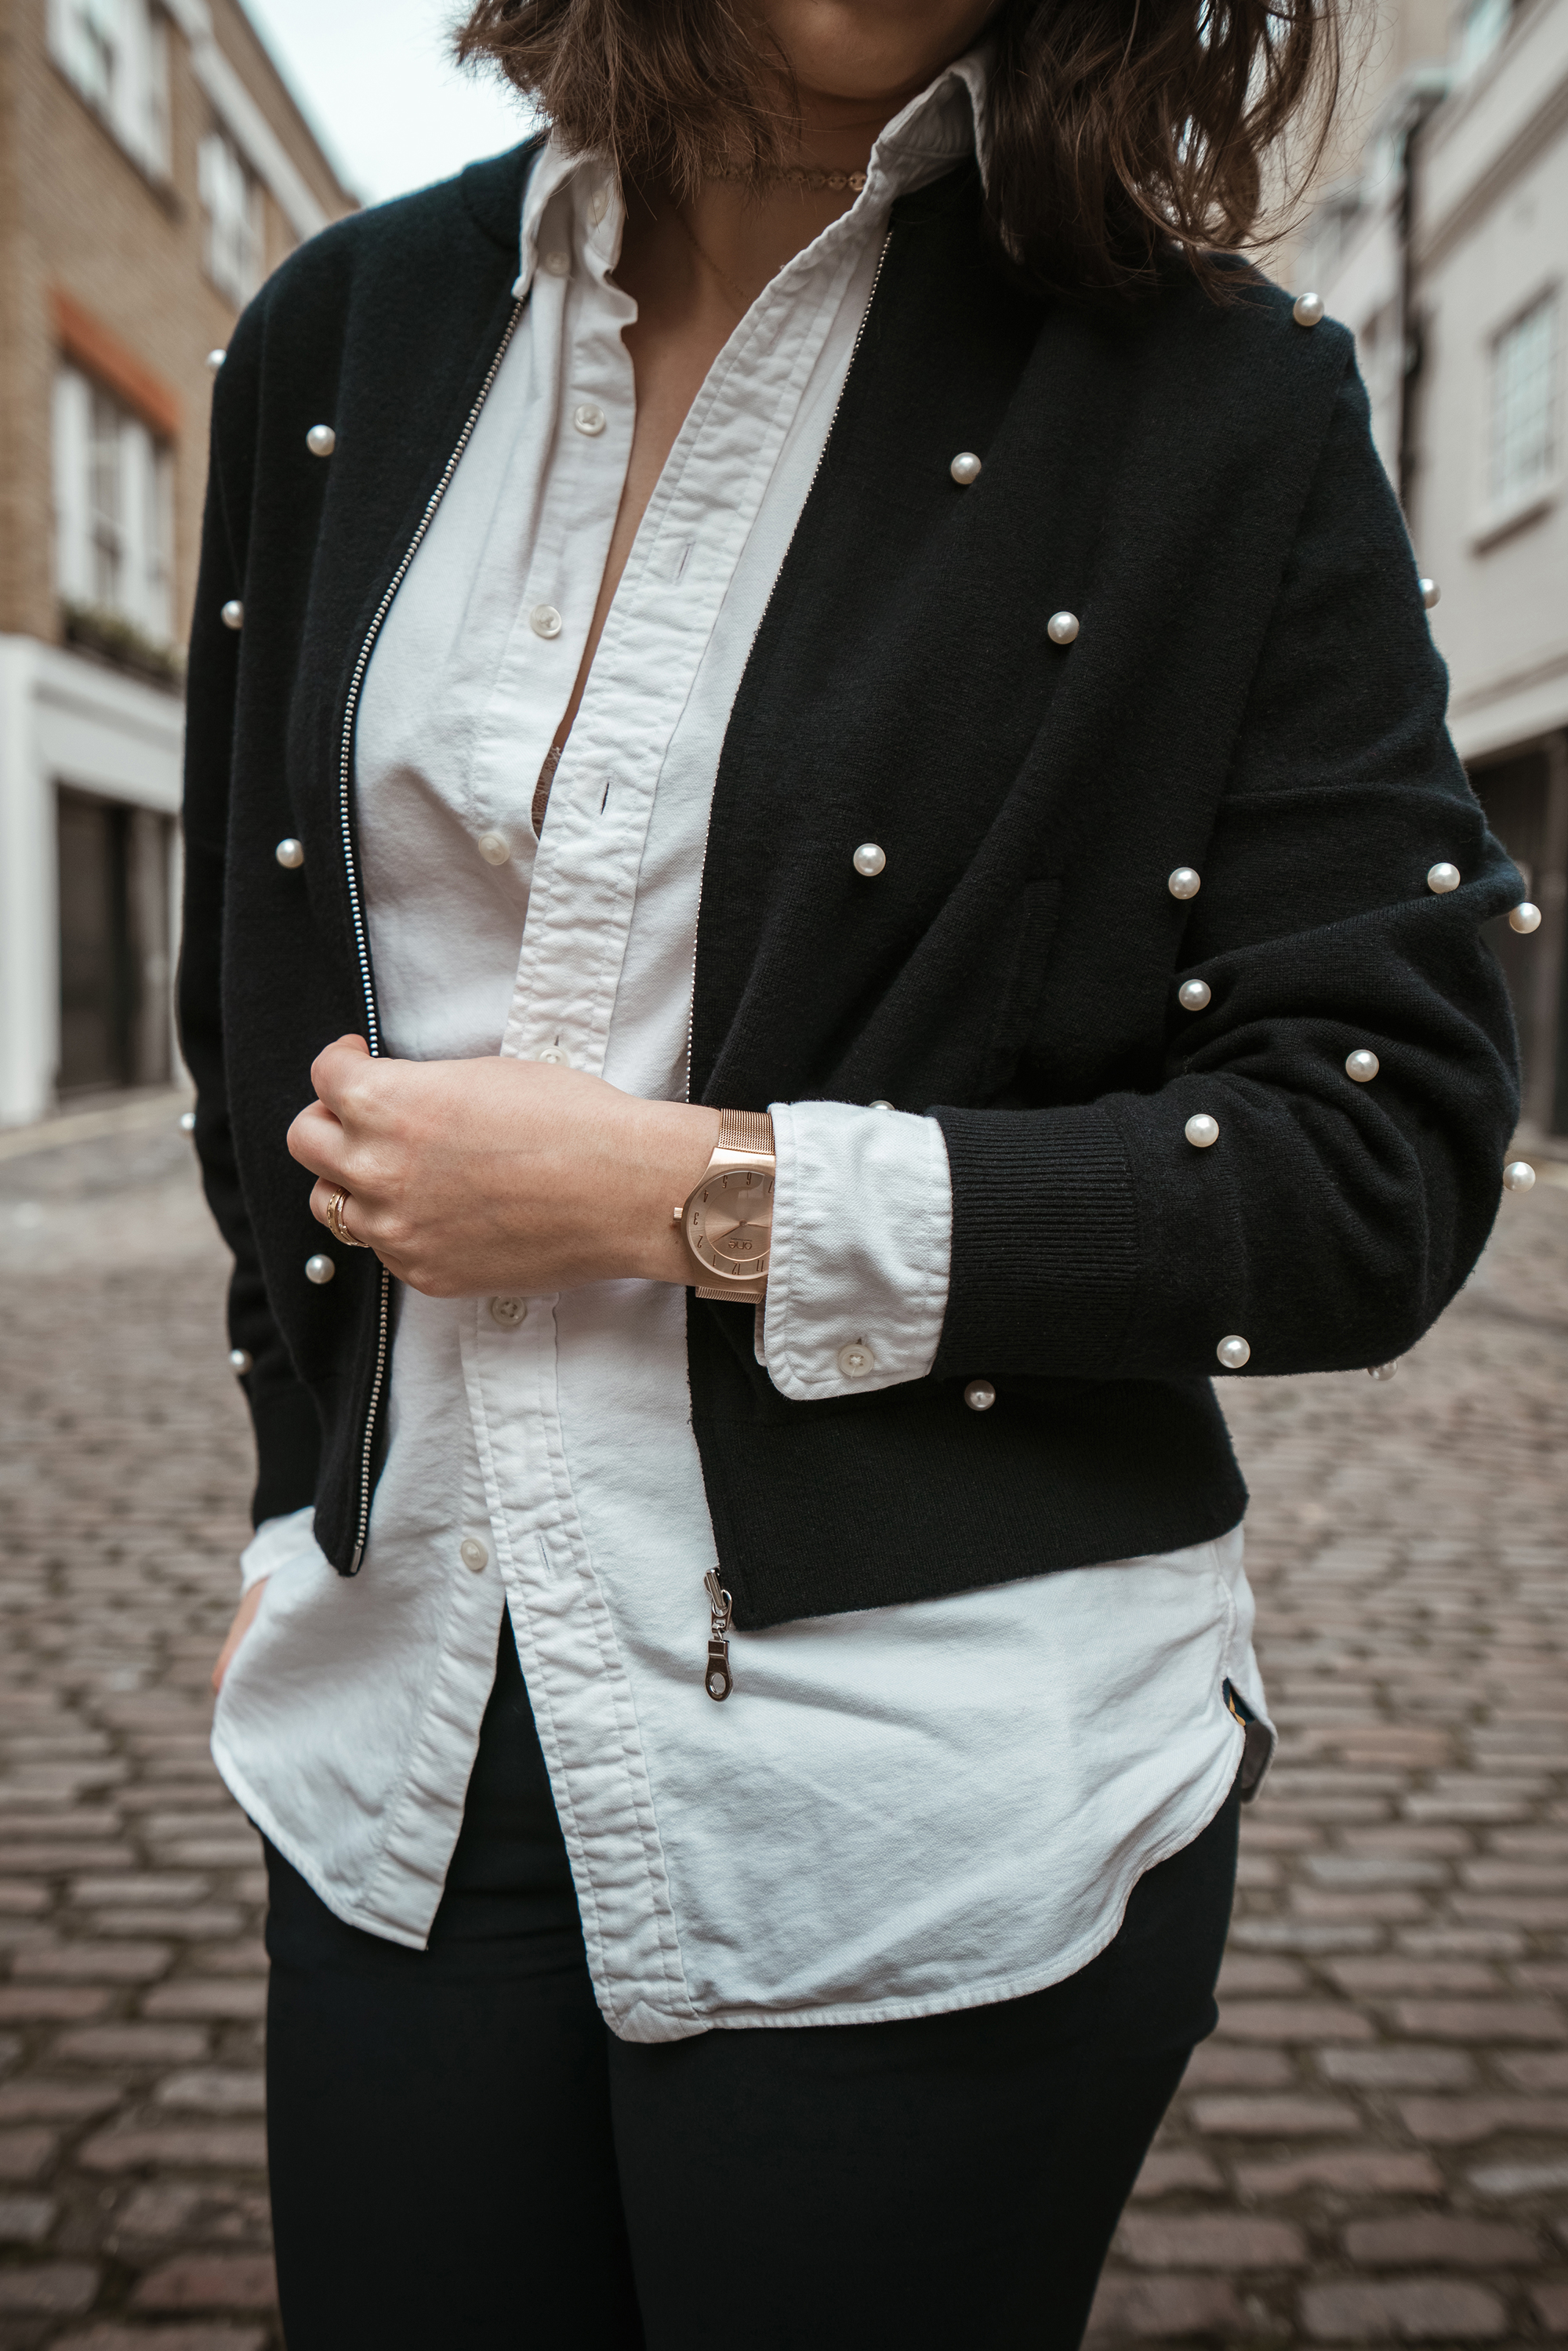 White shirt and Bomber jacket Look